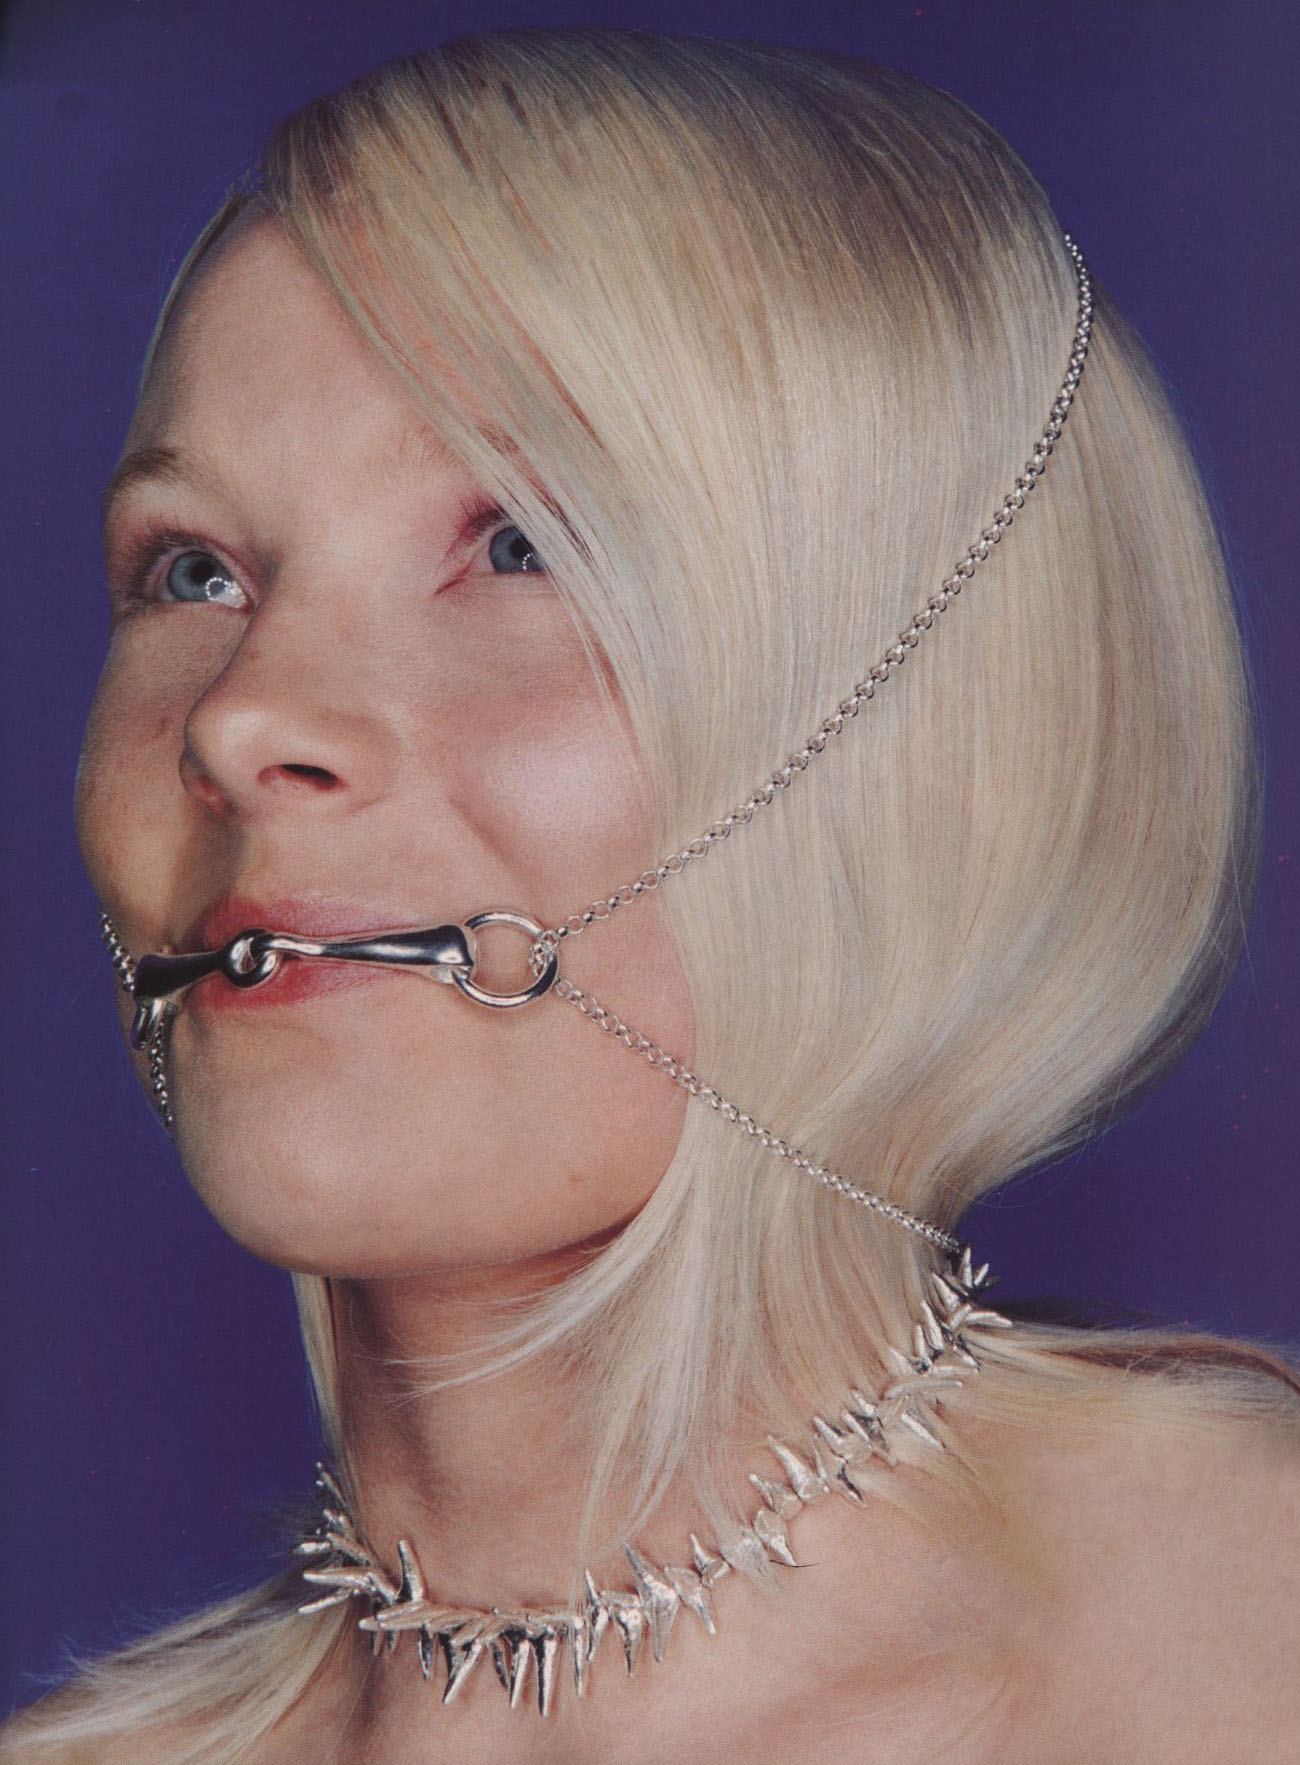 MOUTHPIECE AGENT PROVOCATEUR, SPIKY NECKLACE LARS STURE | PHOTOGRAPHY PETER ROBATHAN | STYLING LYNETTE GARLAND | THE FACE NO 93 | JUNE 1996